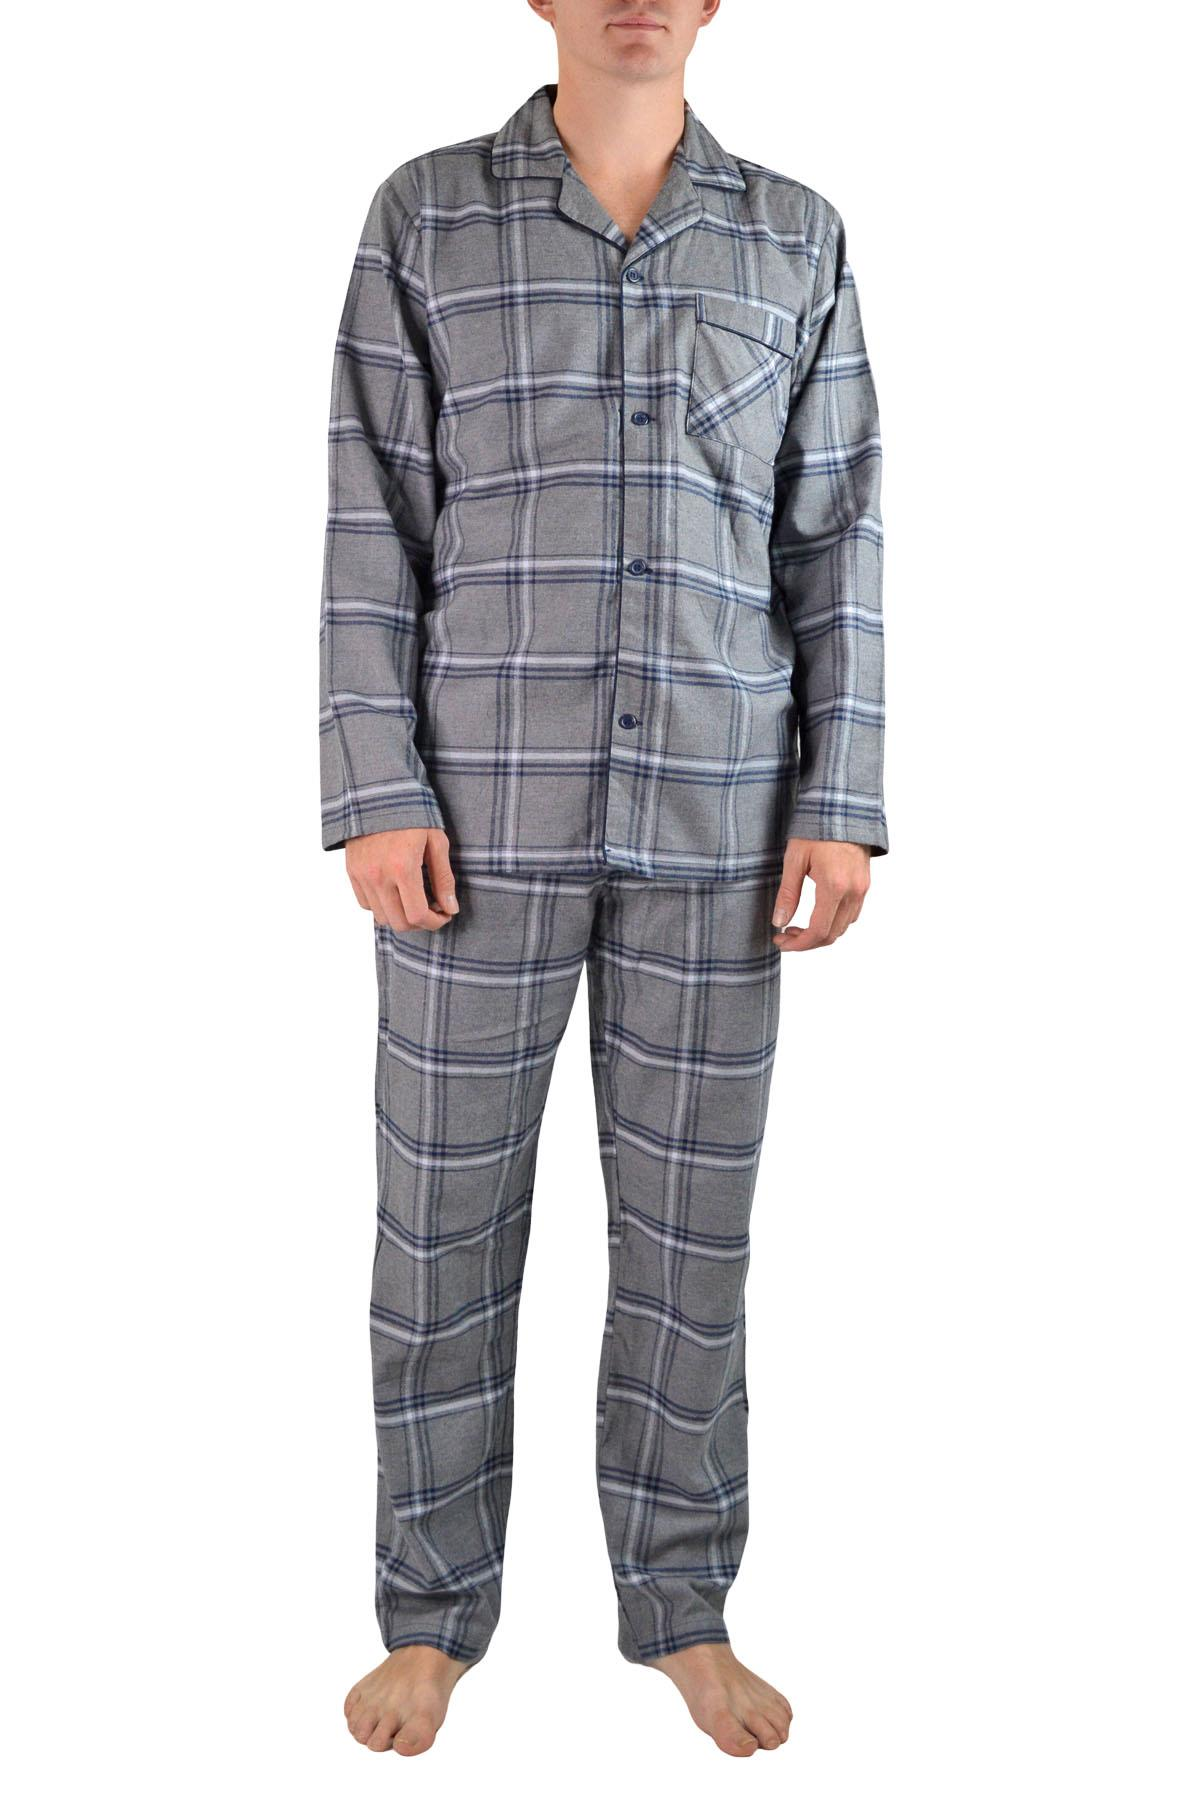 NEW-Mens-Brushed-Pure-Cotton-Check-Pyjamas-Flannelette-PJ-Set-in-Blue-Red-Grey thumbnail 8